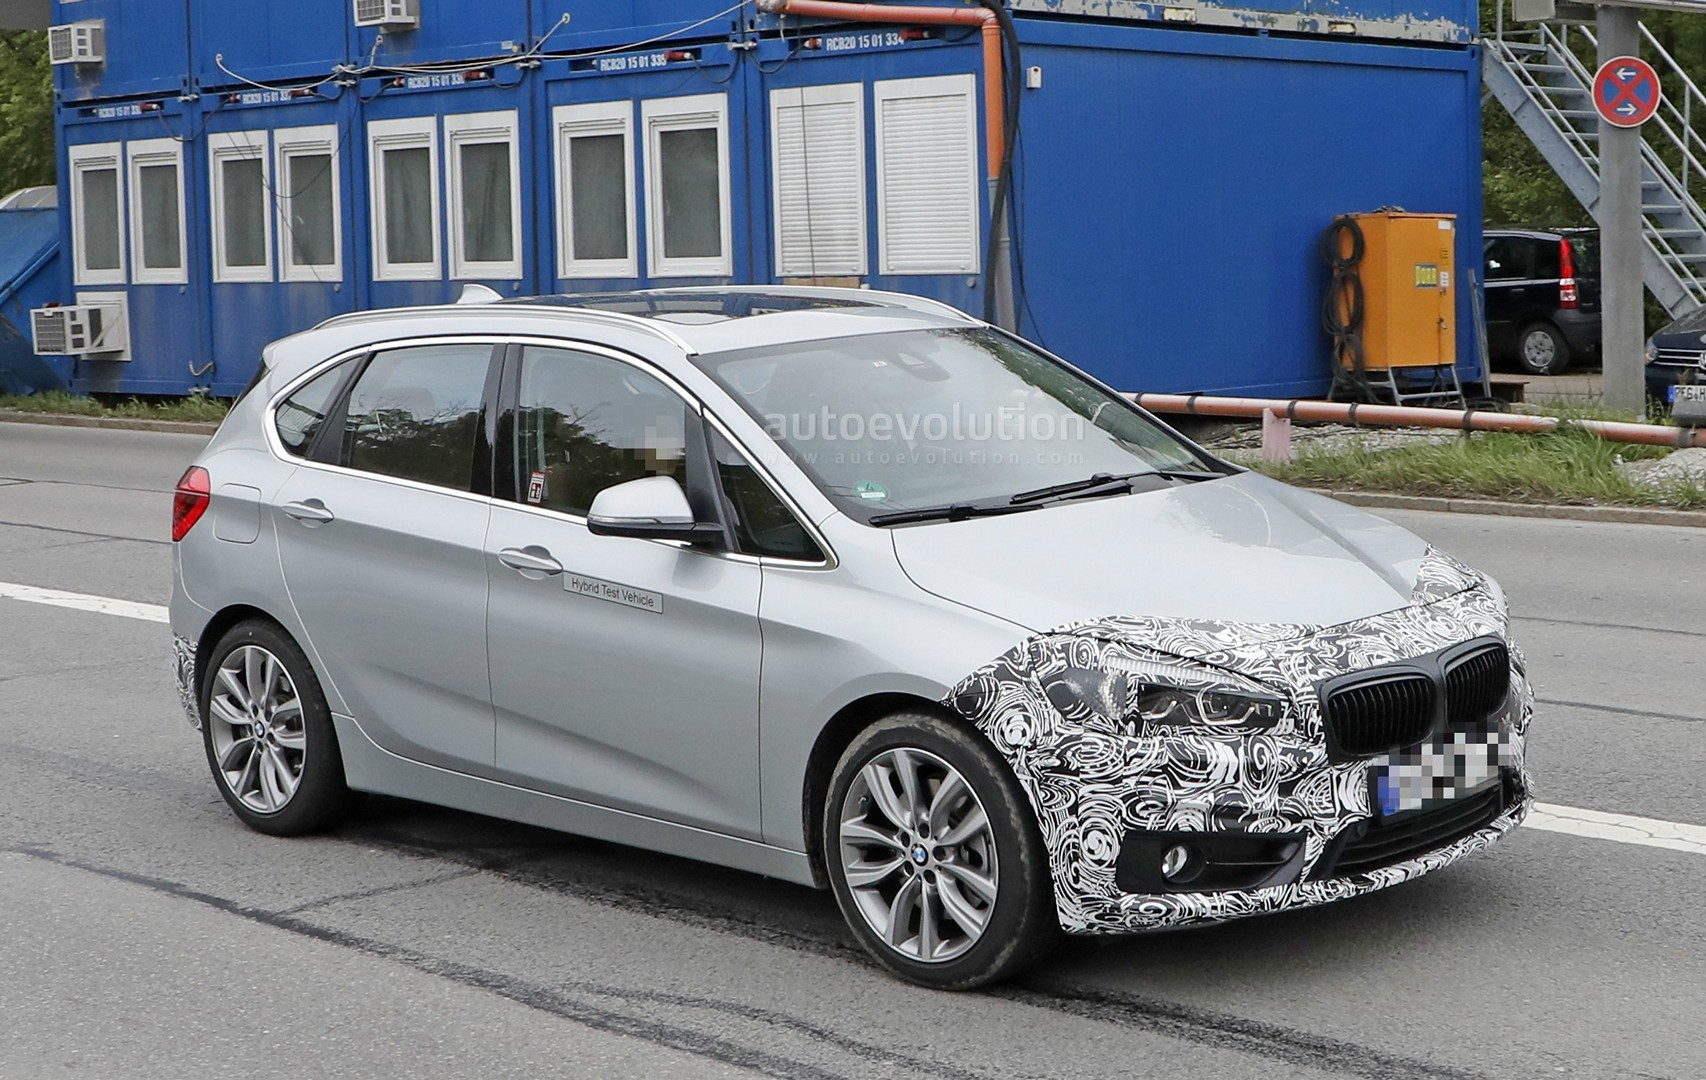 2018 bmw 2 series active tourer spied with cool new headlights autoevolution. Black Bedroom Furniture Sets. Home Design Ideas